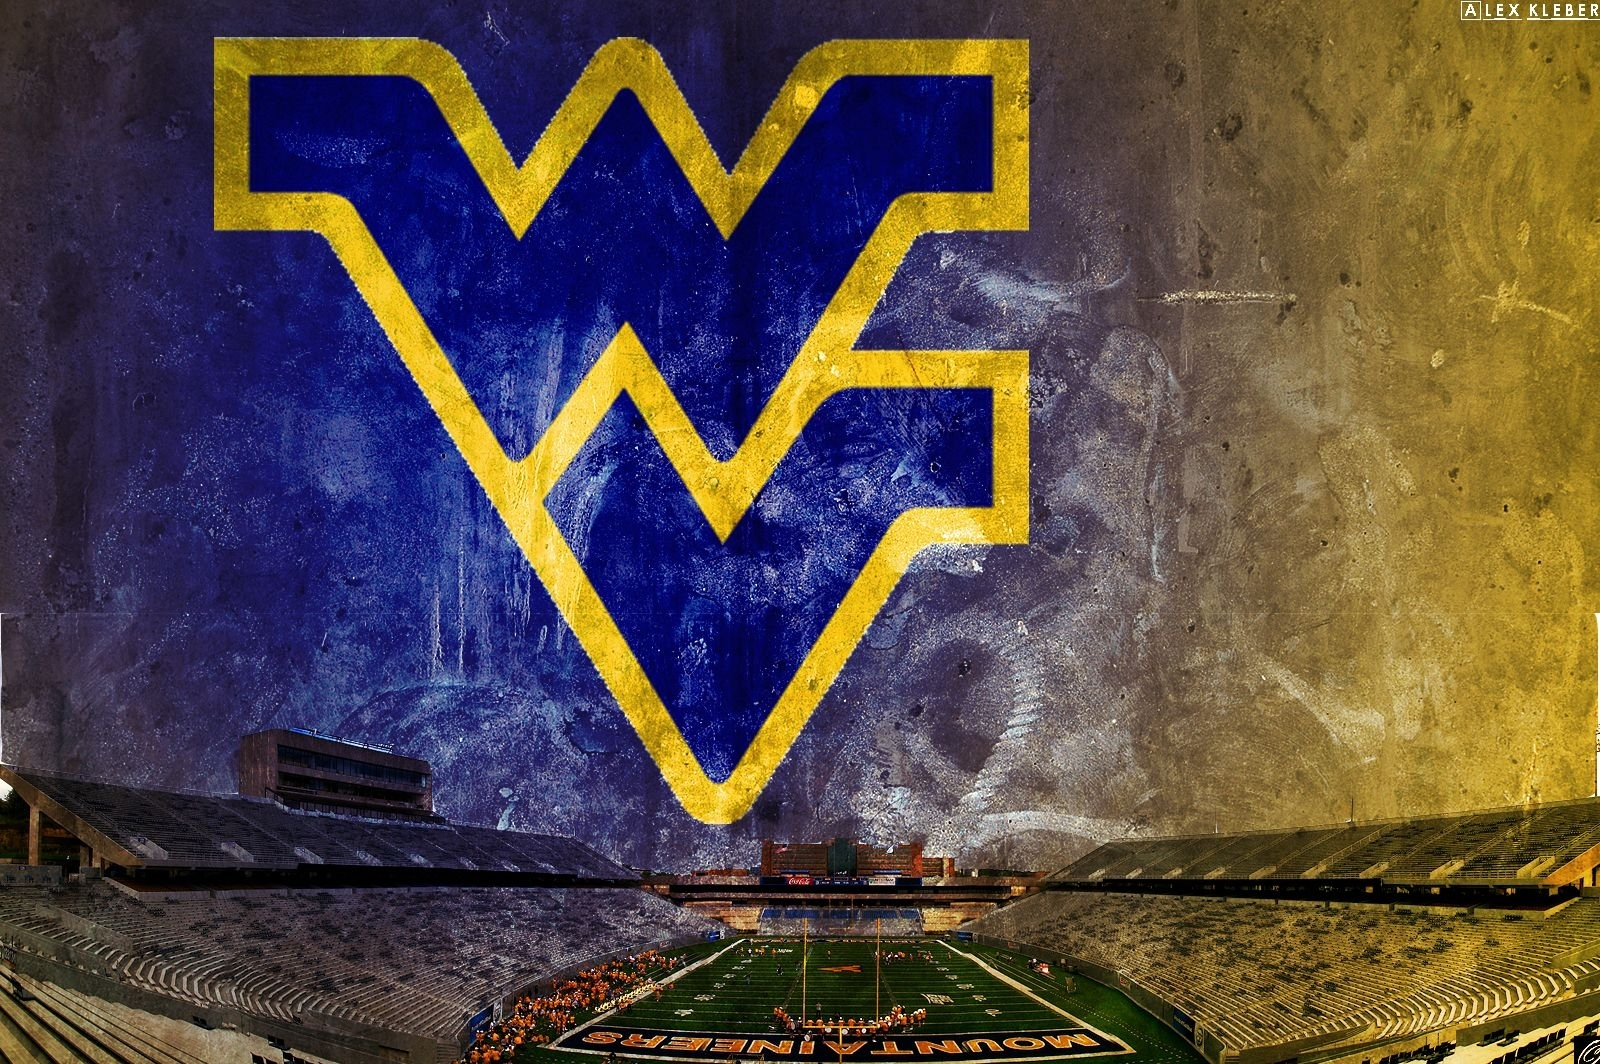 pictures of wvu mountaineers | wvu wallpaperklebz | things i